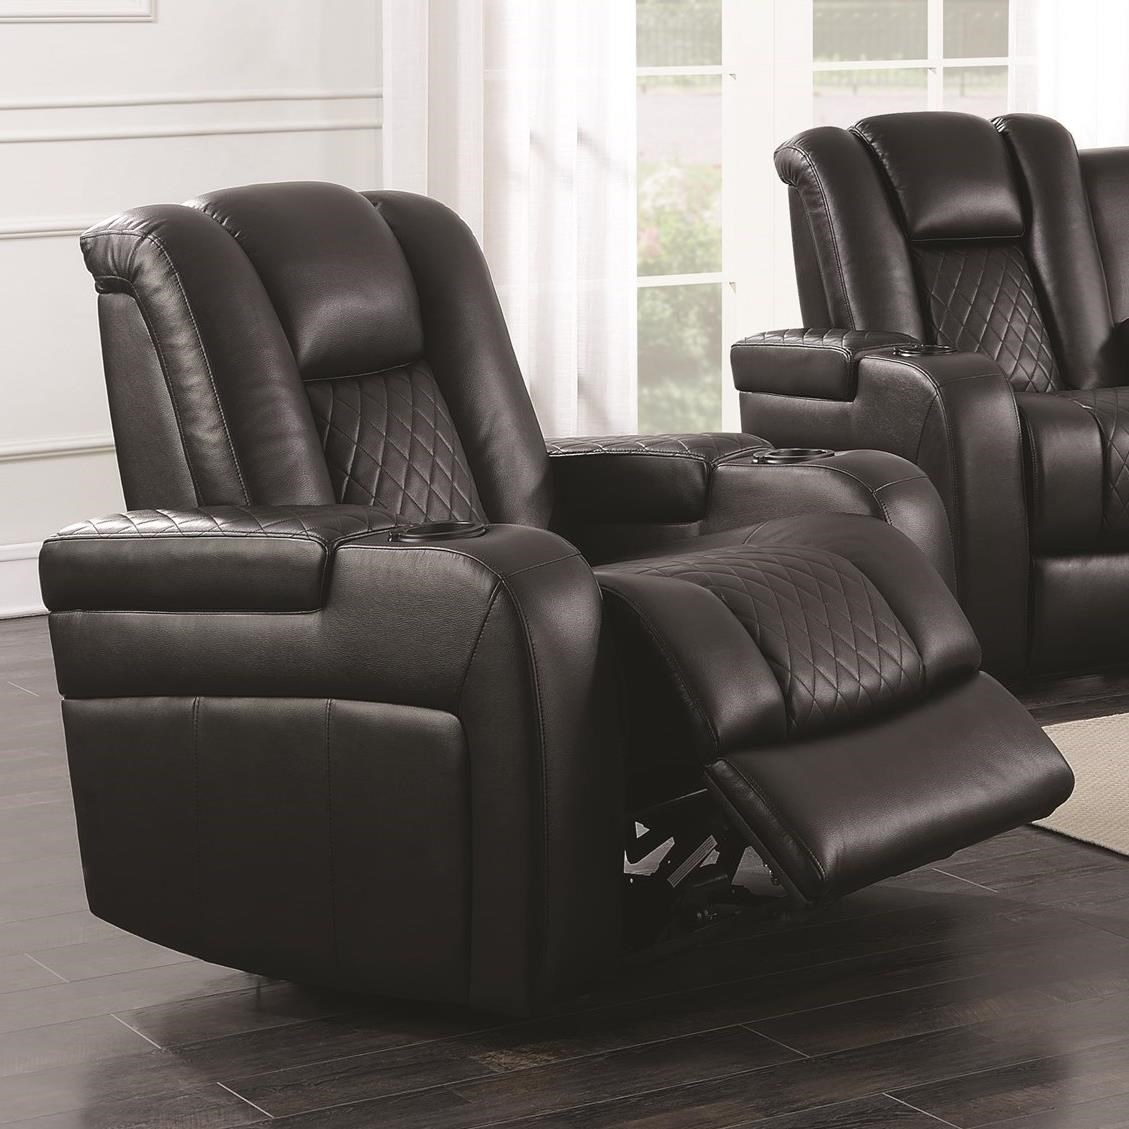 Ordinaire Coaster Delangelo Casual Power Recliner With Cup Holders, Storage Console  And USB Port   Coaster Fine Furniture